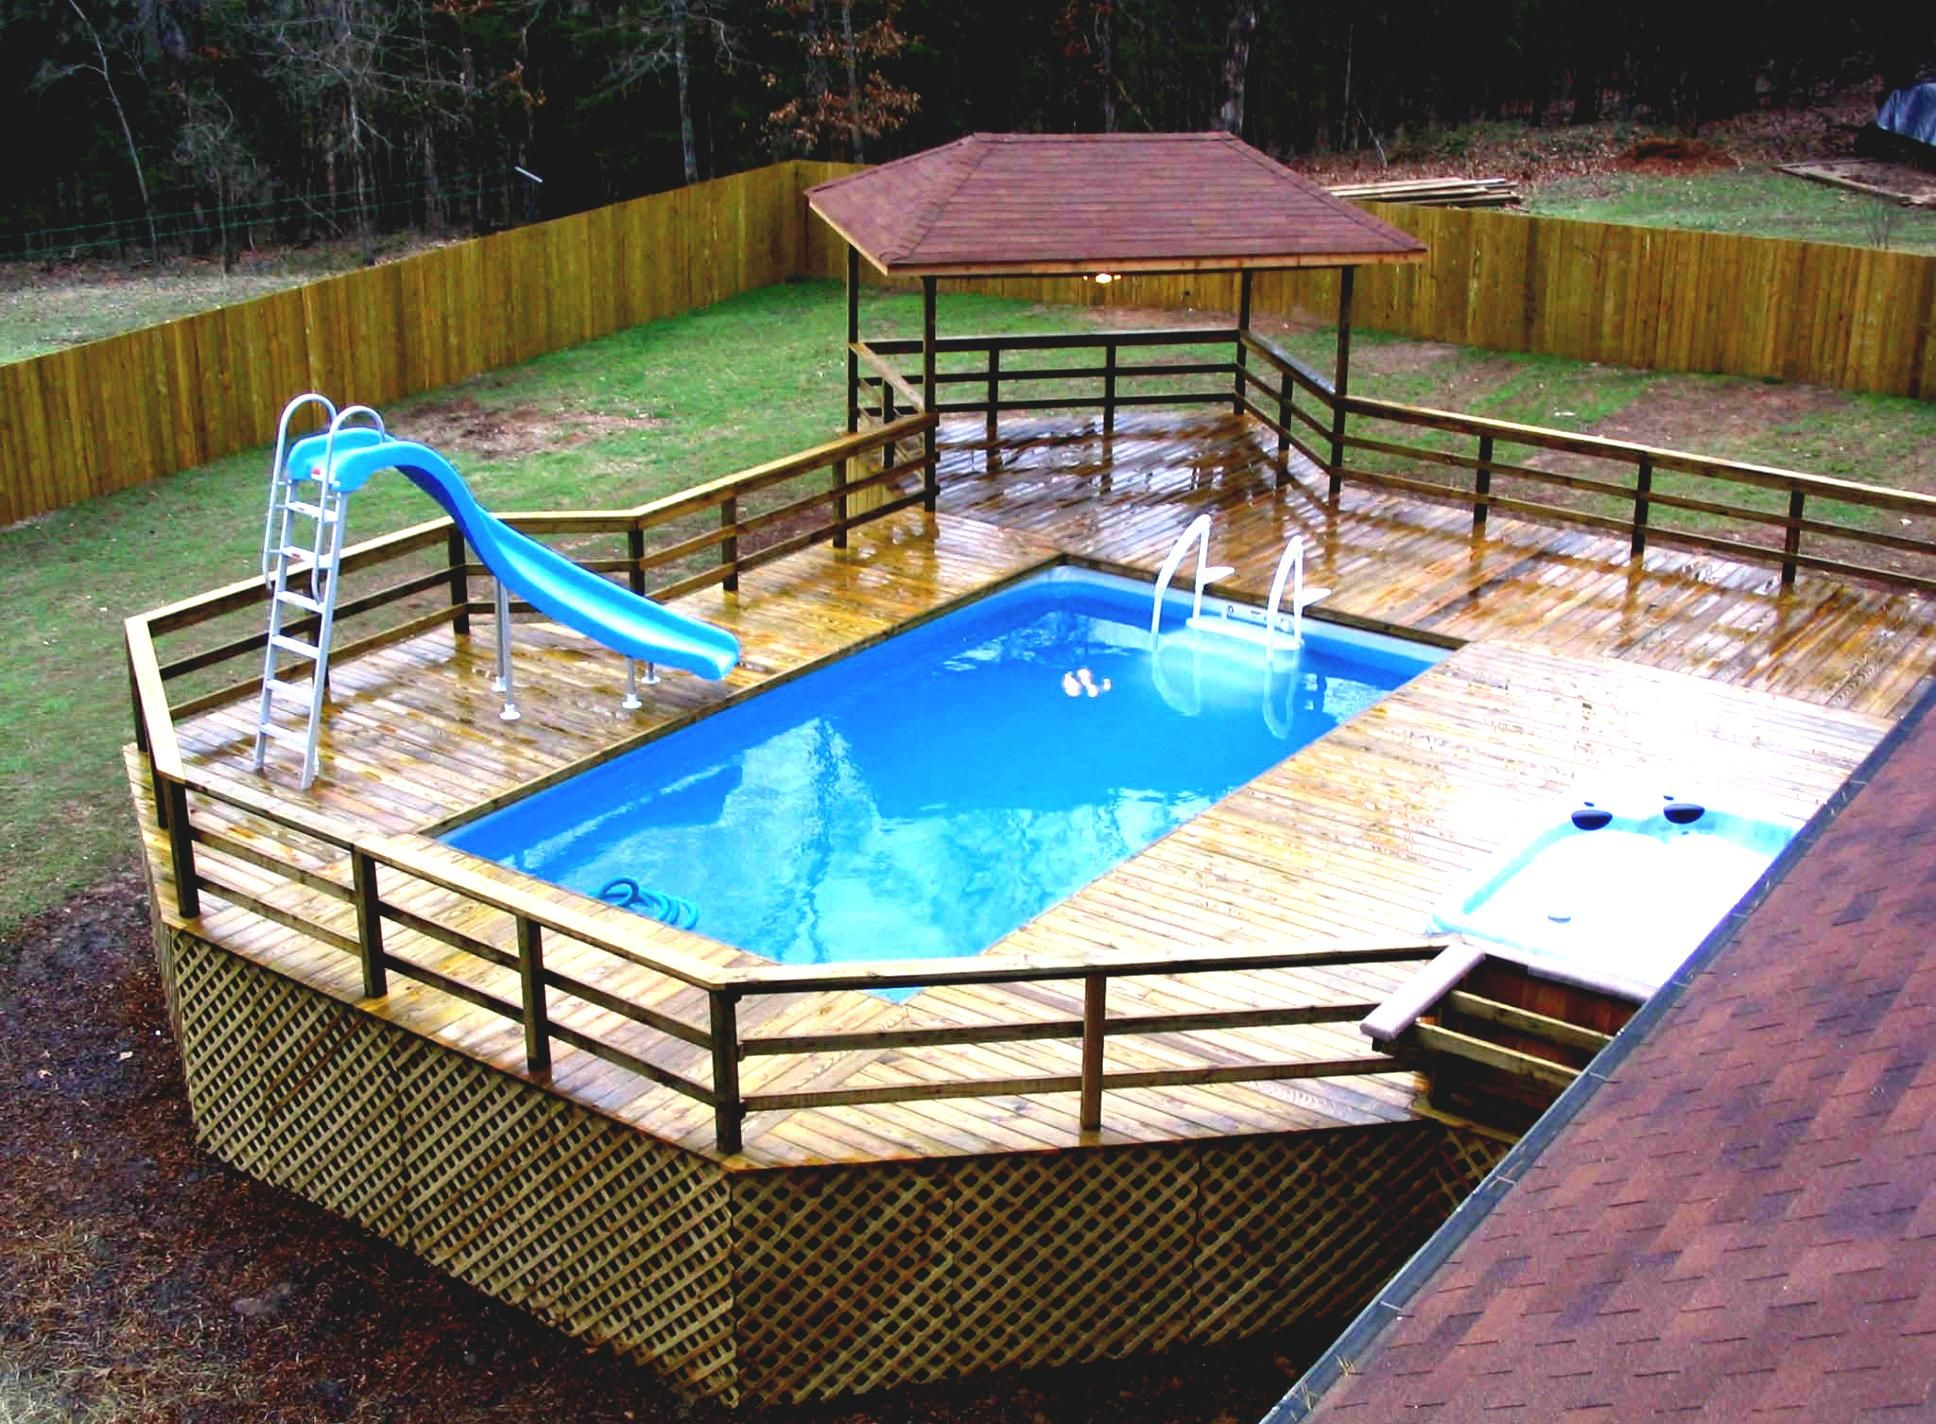 Intex above ground pool landscaping ideas pdf backyard for Pool landscape design